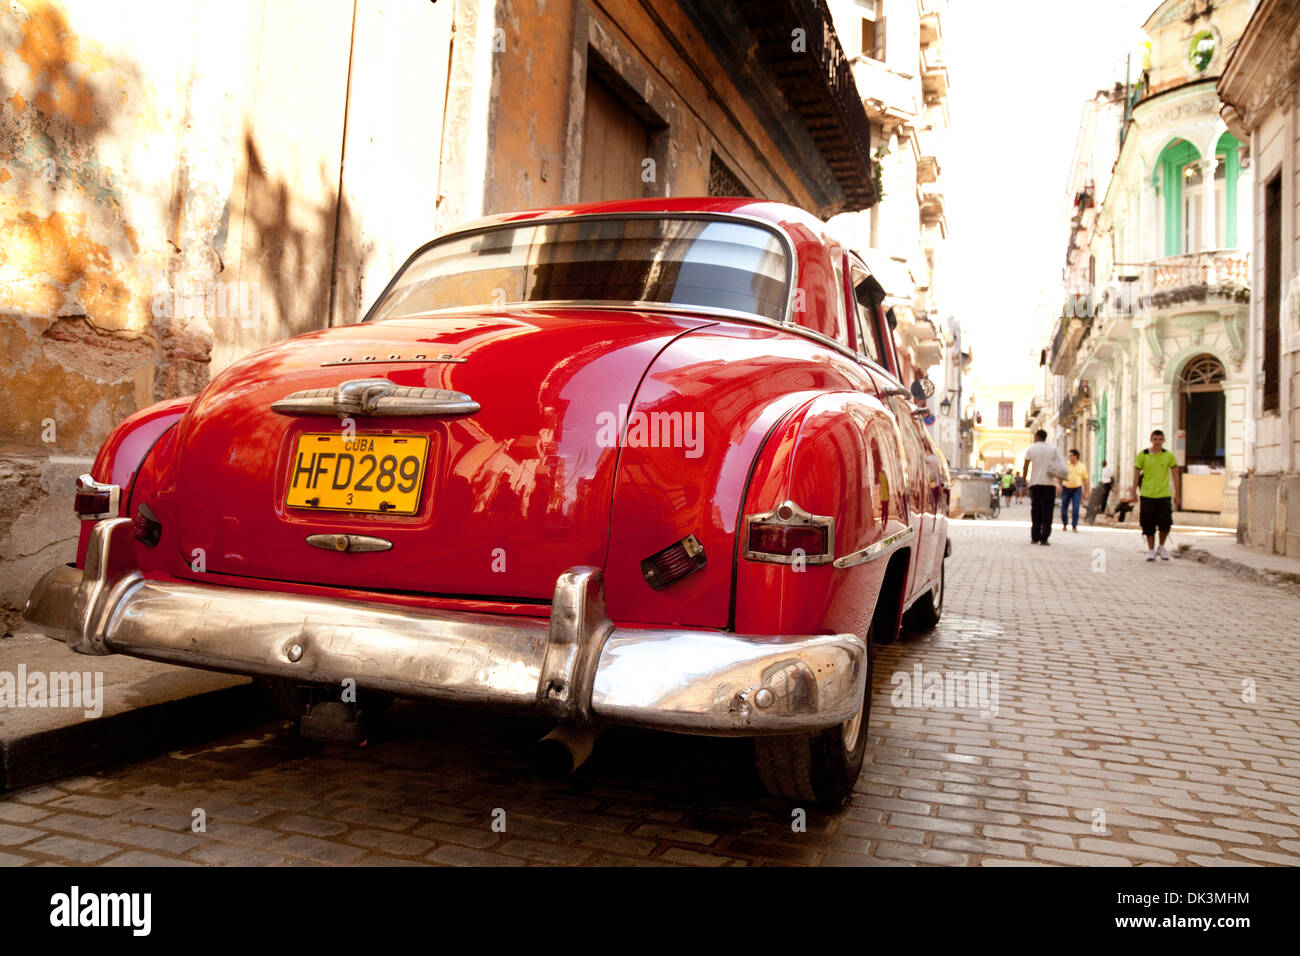 Old red Dodge american car on the street, Havana Cuba Caribbean - Stock Image